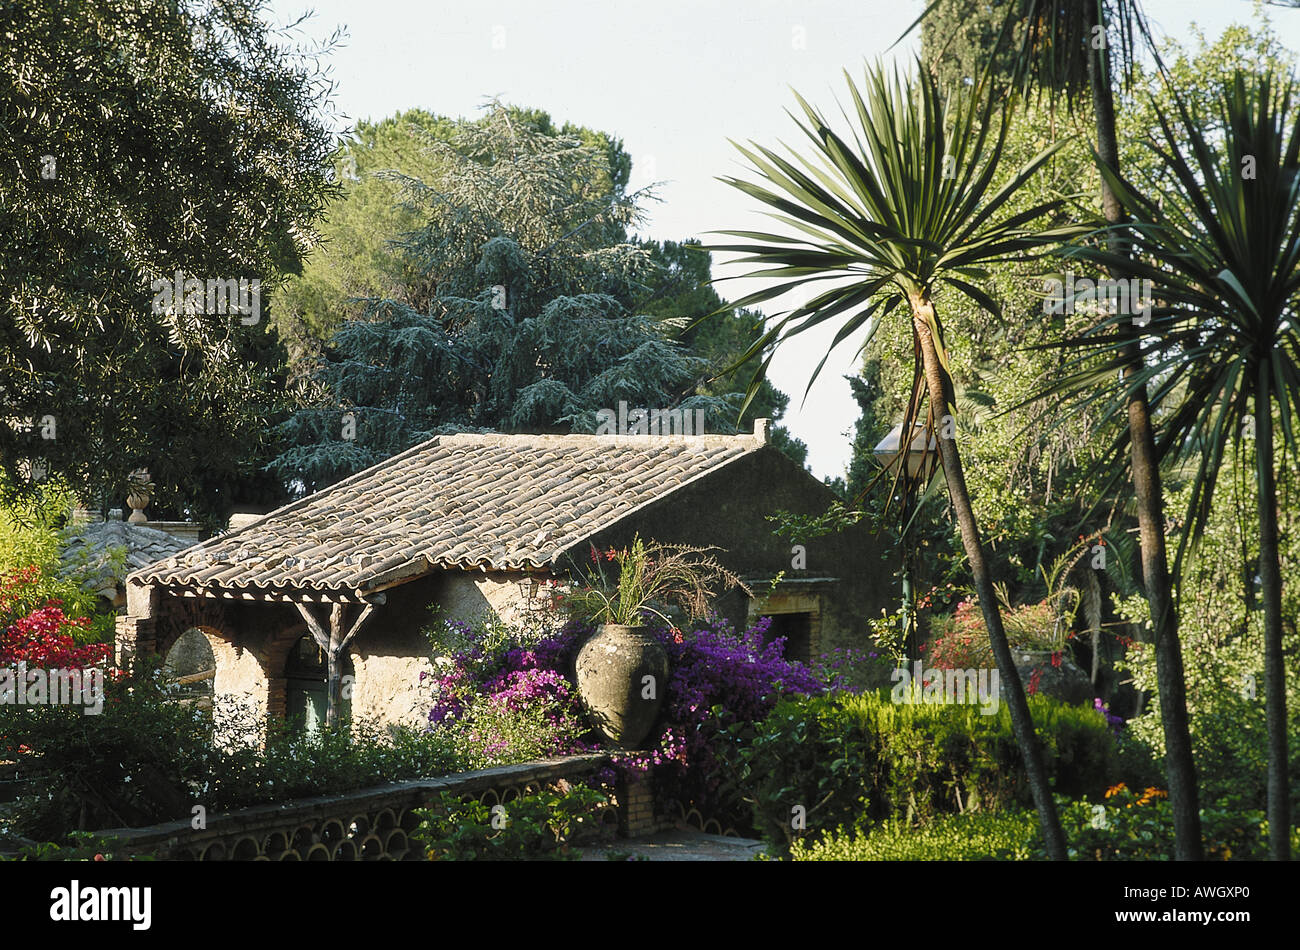 Italy sicily northeast sicily taomina tiled roof for Does new roof affect appraisal